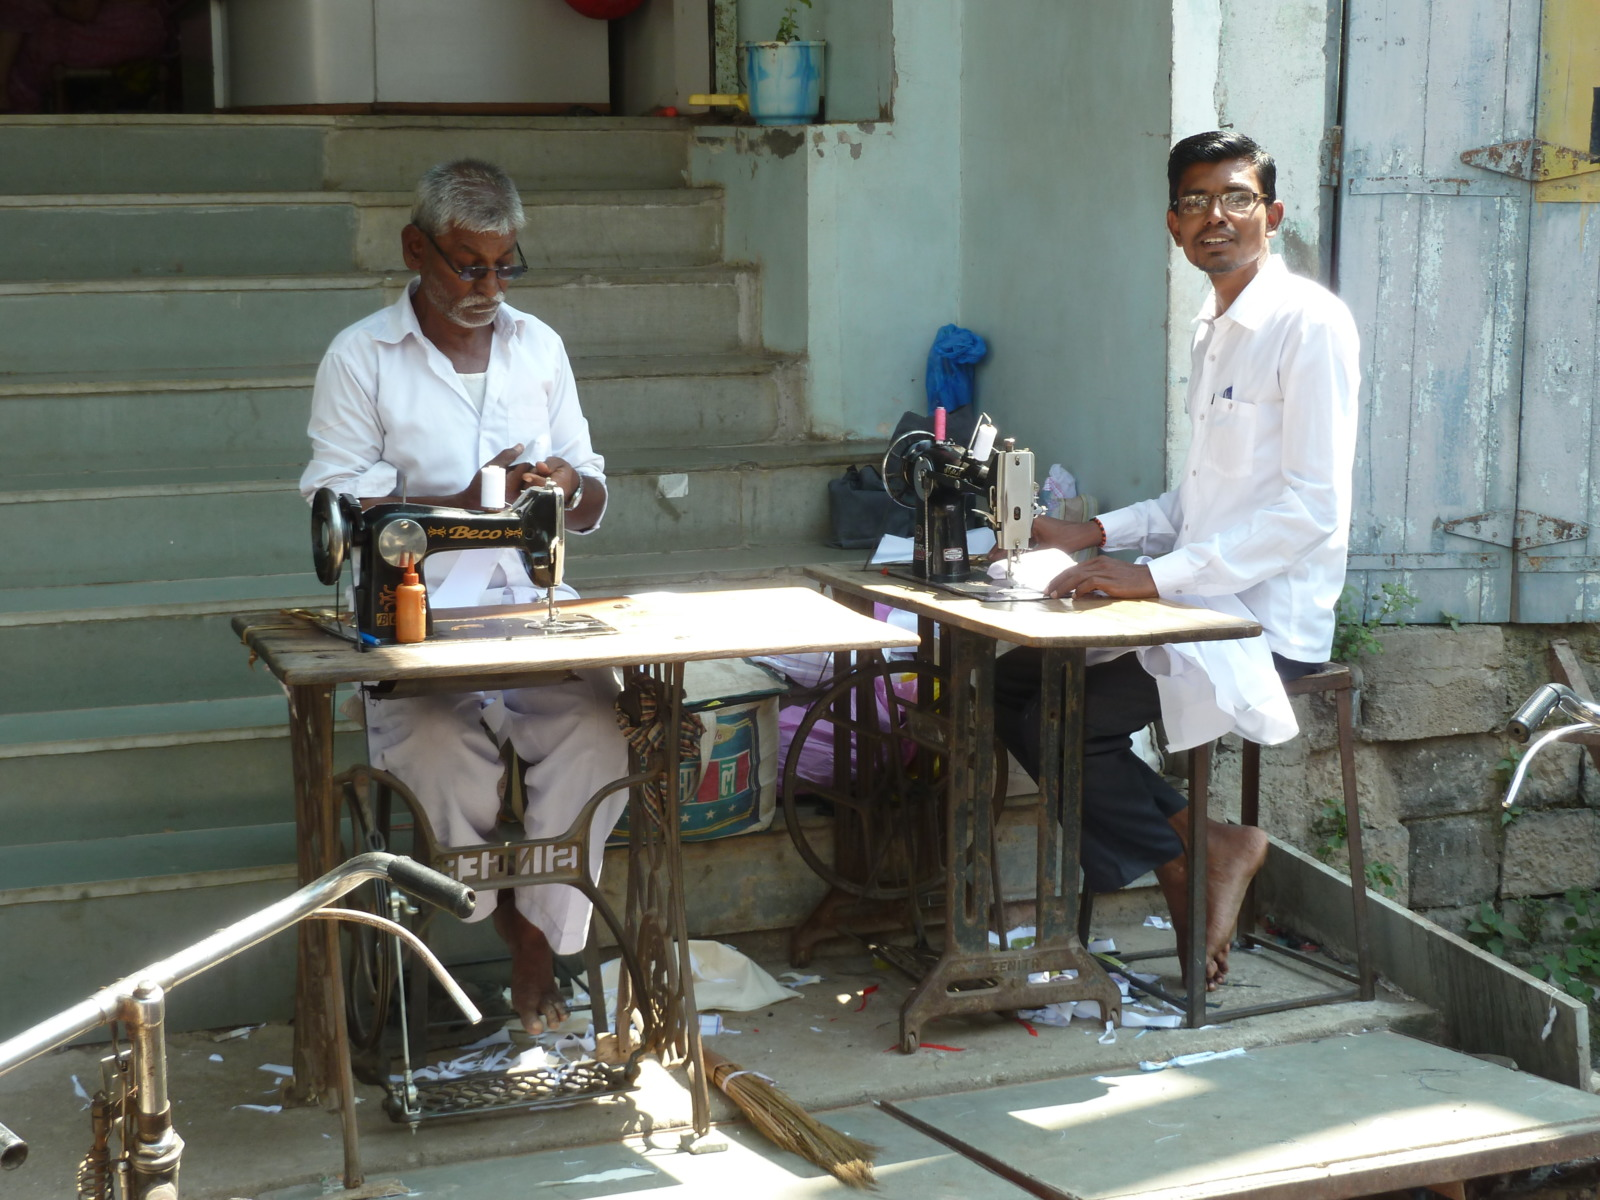 Two men sewing on the street